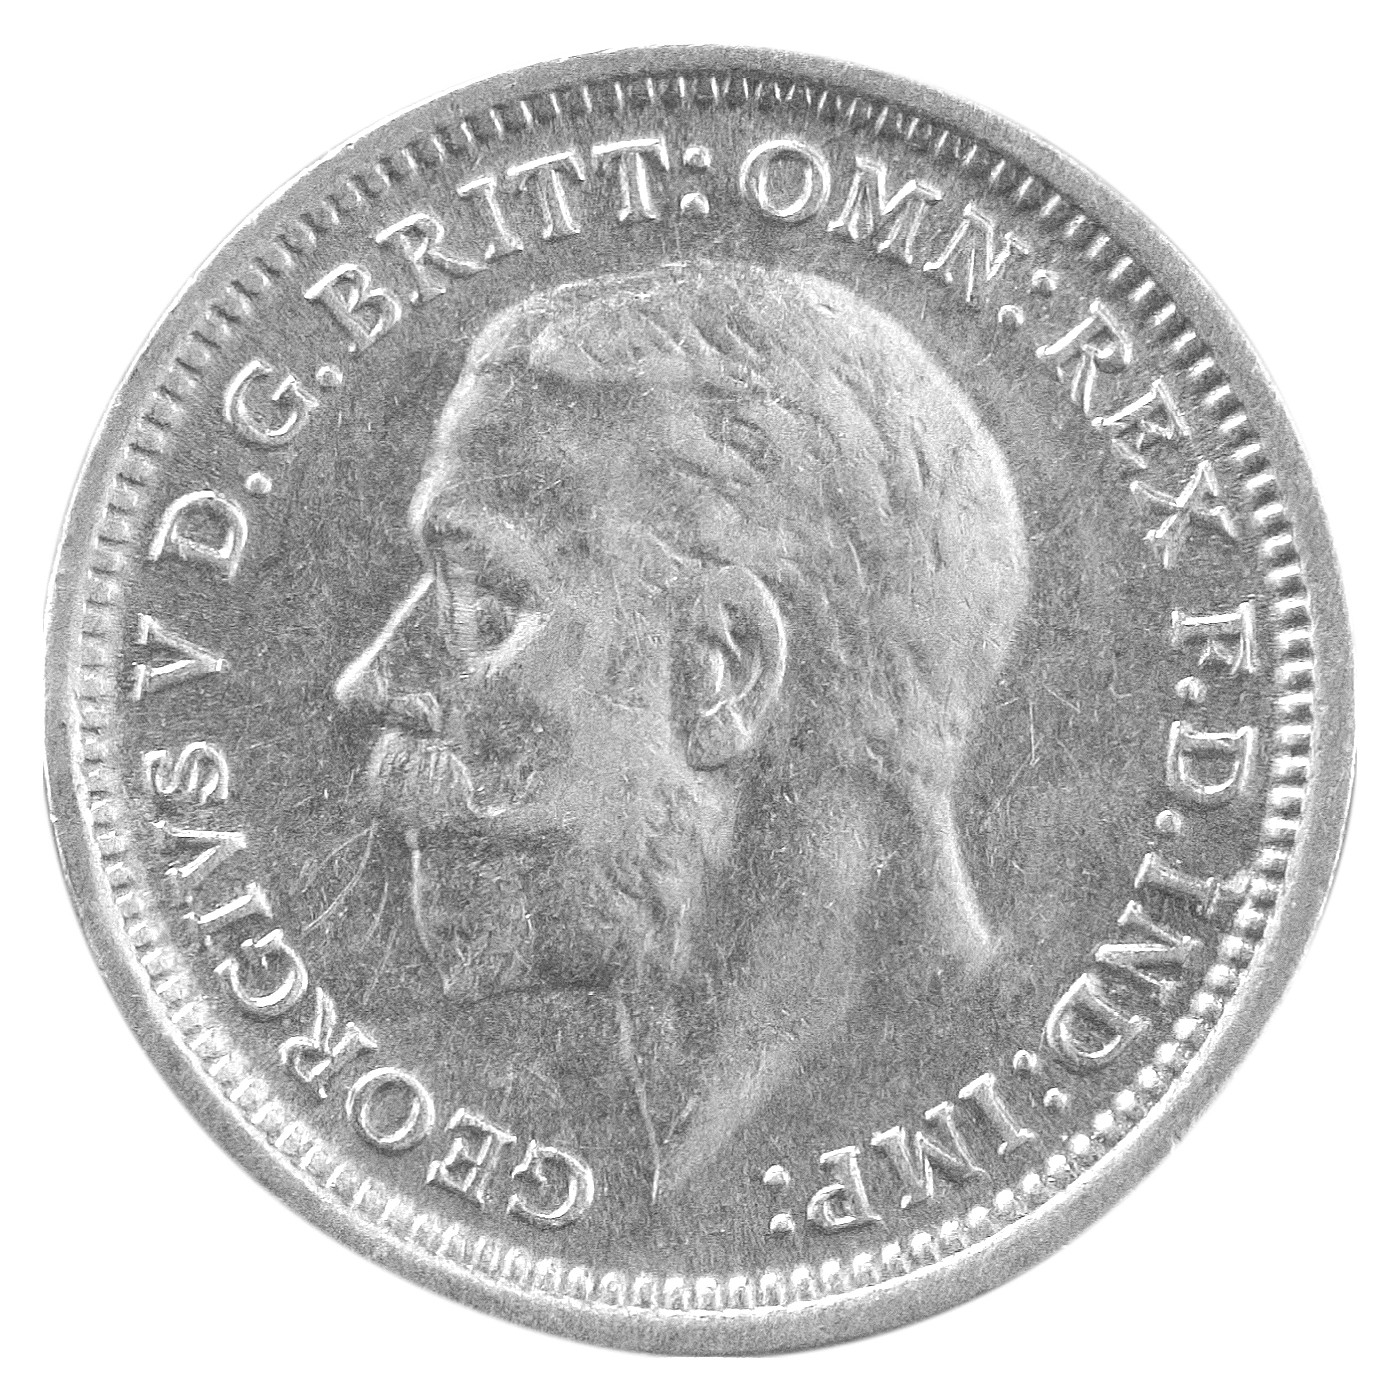 The coins were minted during King George V's reign between 1910 and 1936